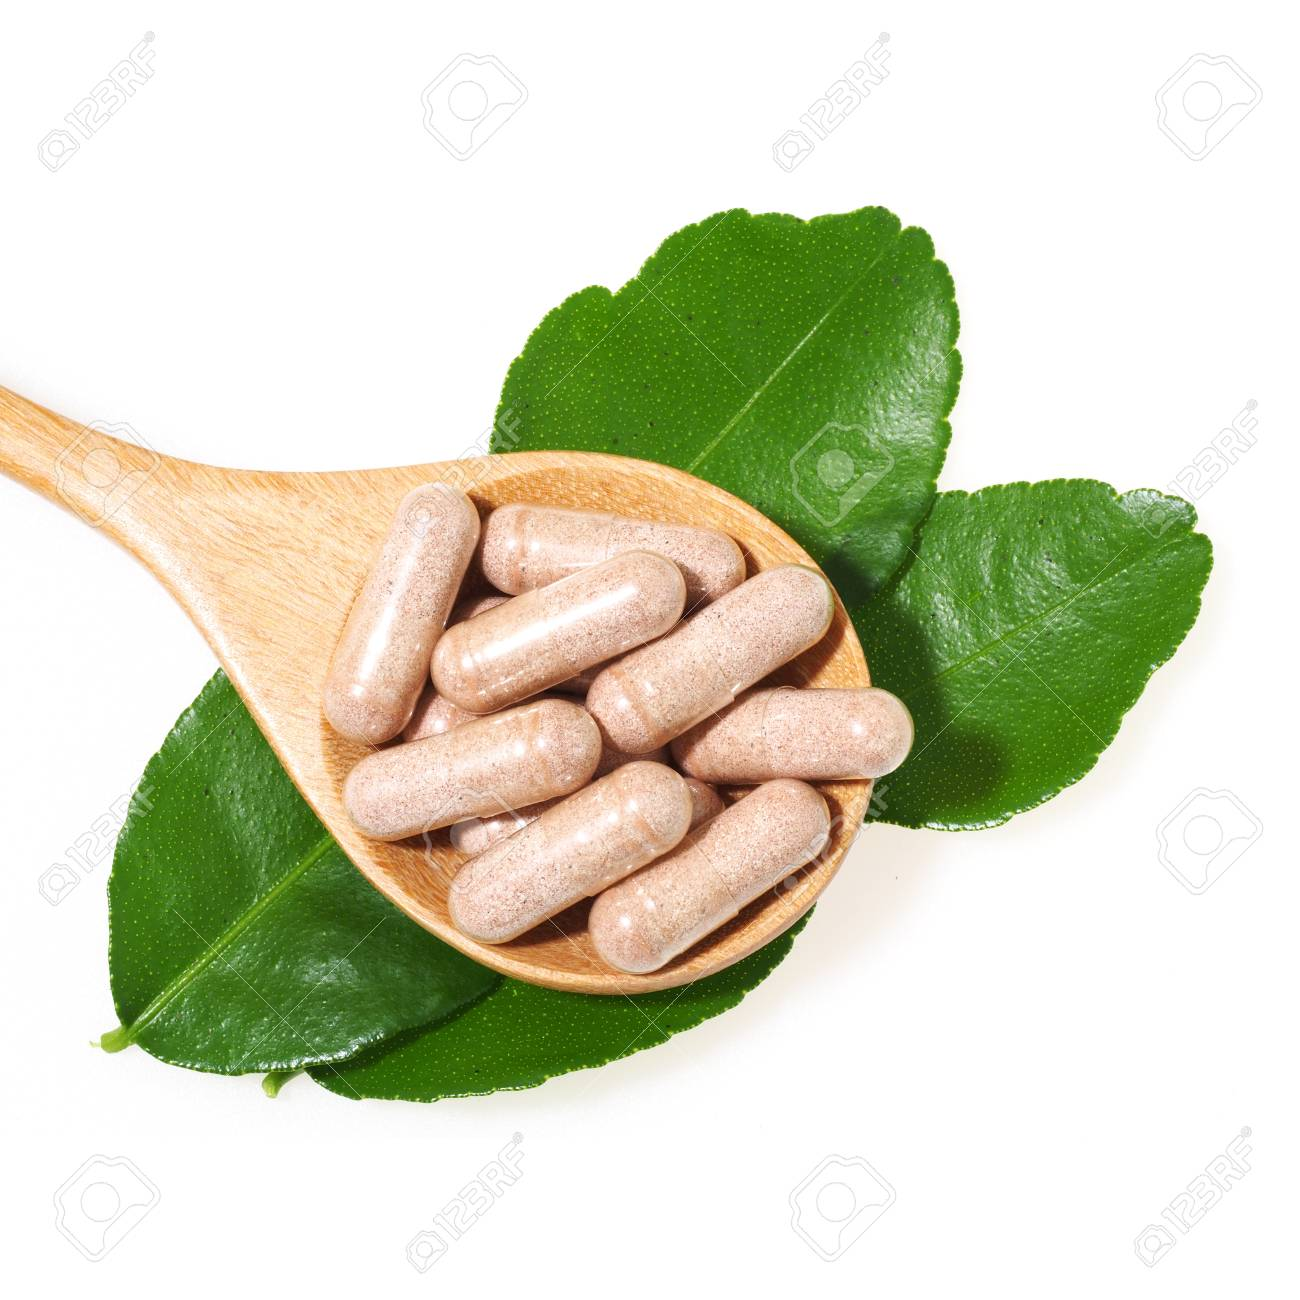 Herbal medicine capsules with leaf of Herb isolated on white background Standard-Bild - 54149964